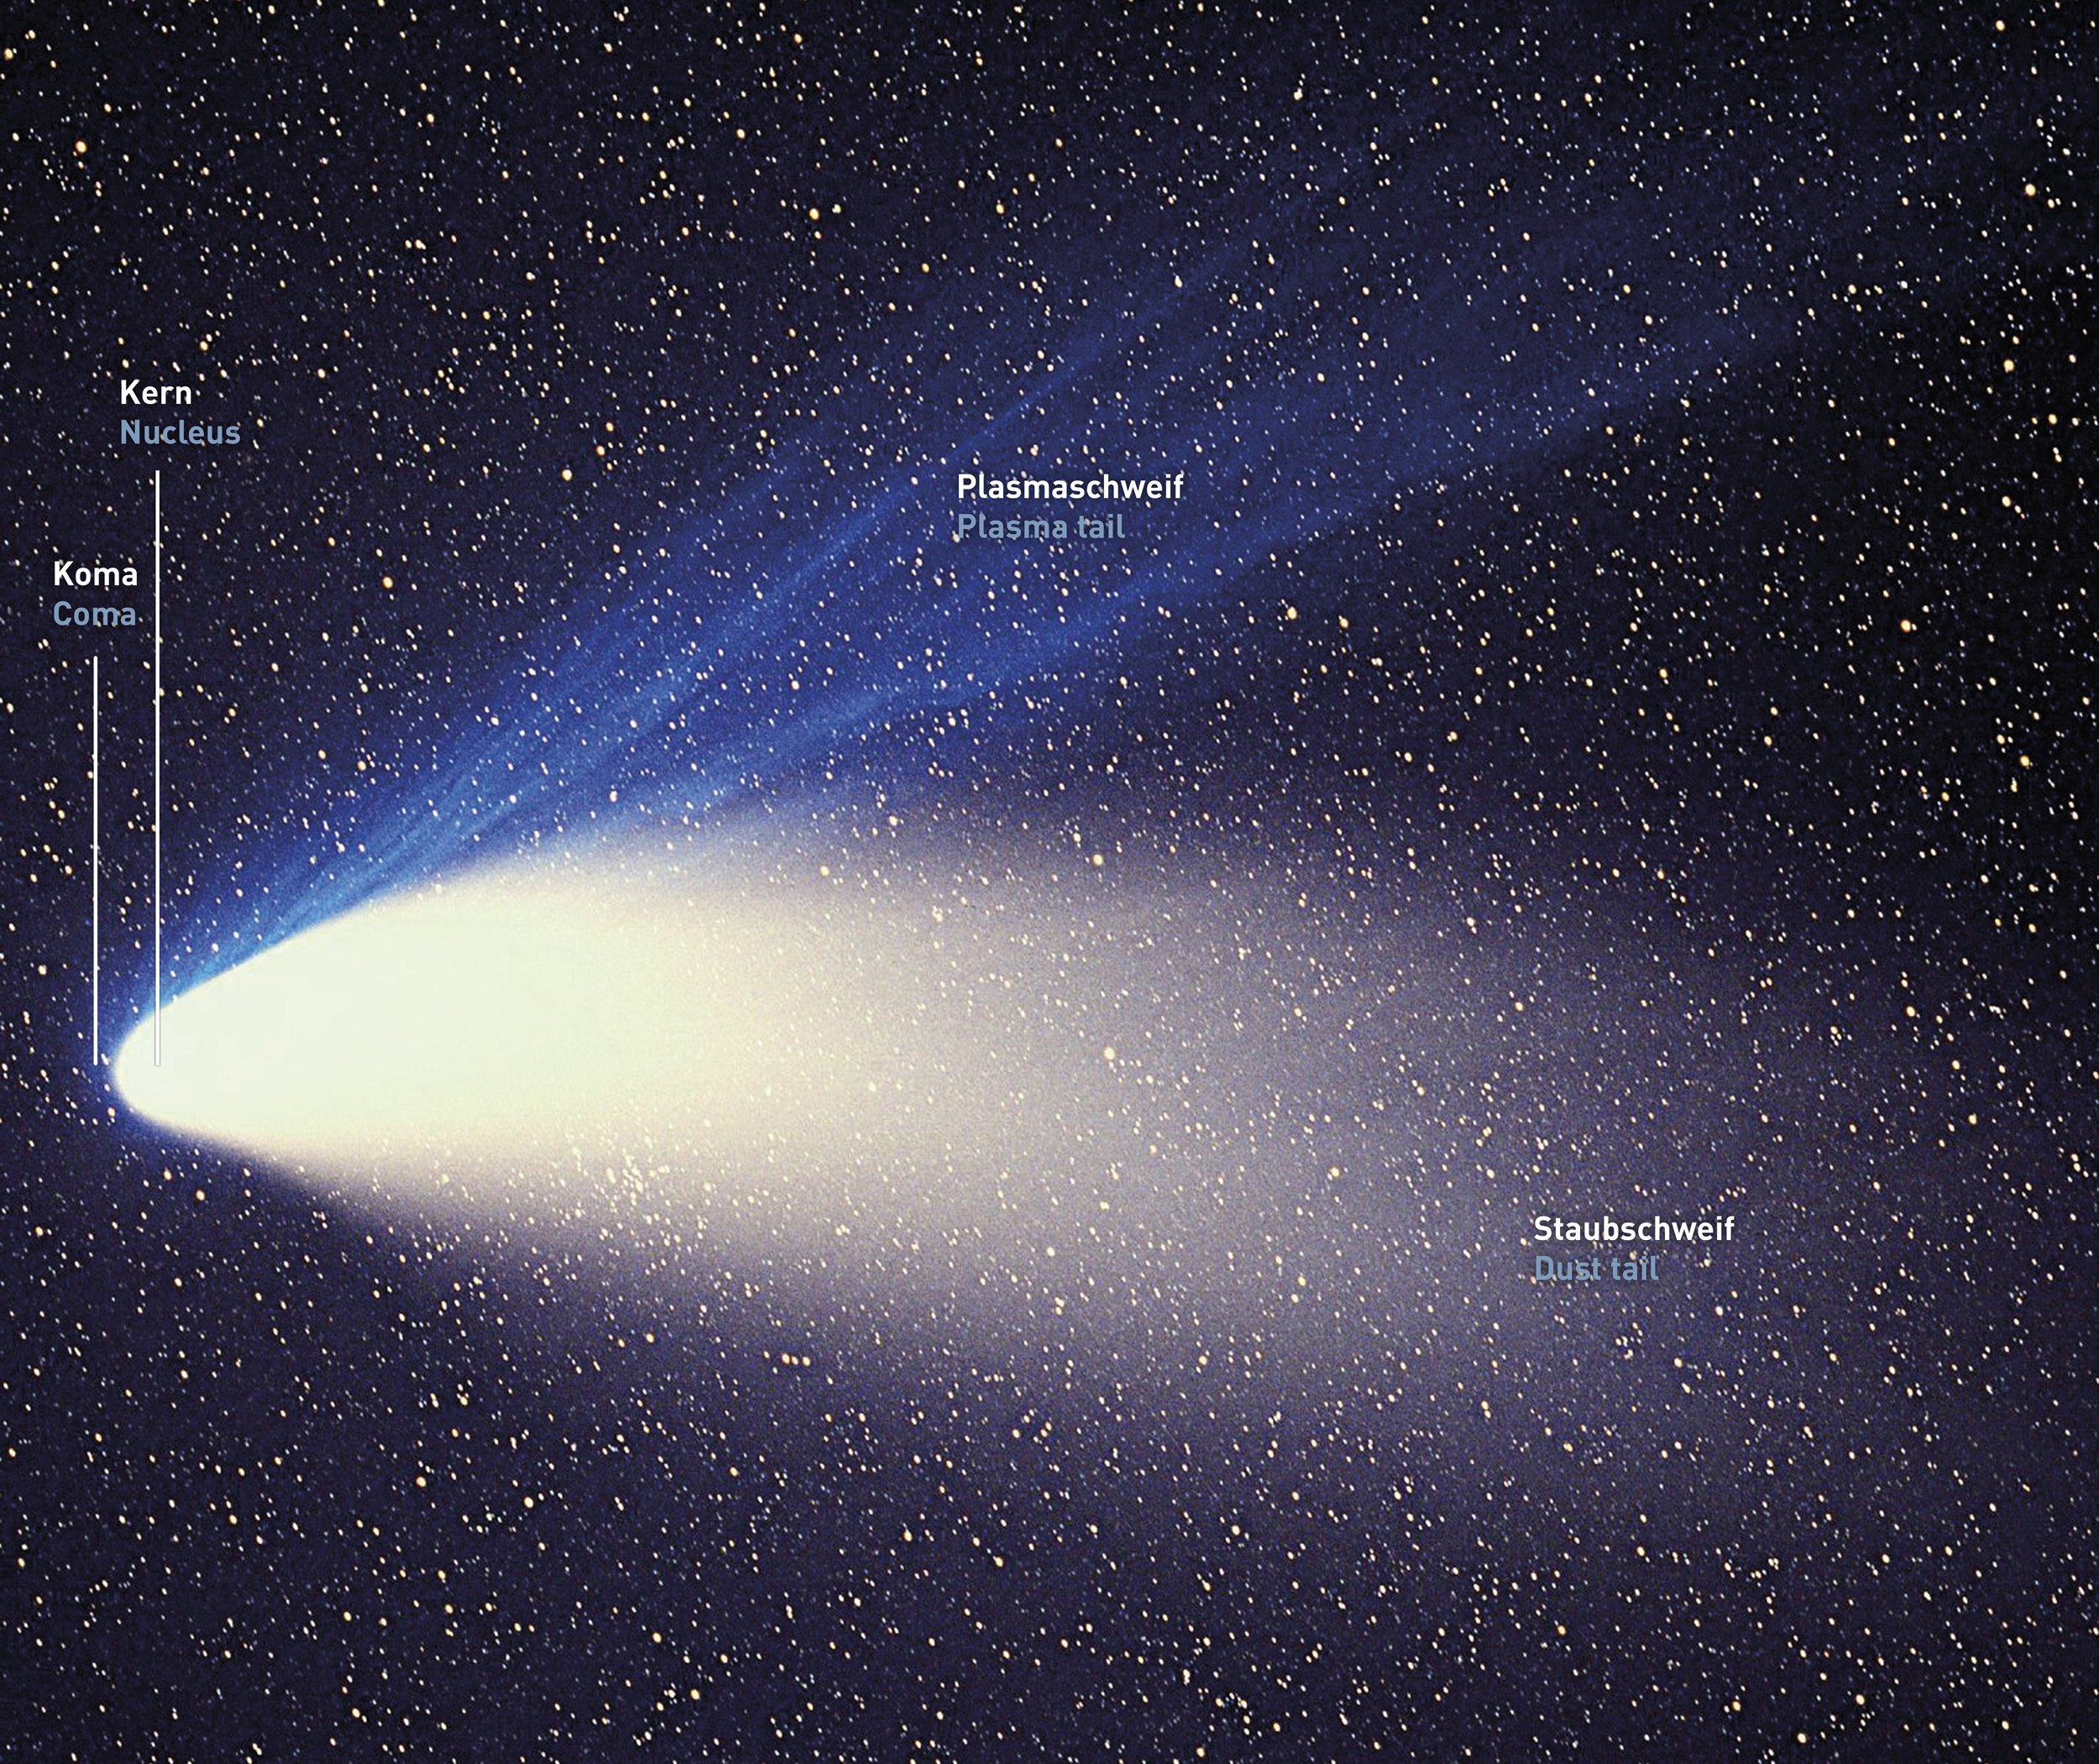 a study of comets Scientists also study comets and asteroids to determine the likelihood of them hitting earth and other planets, and what effect their flybys could have on planetary atmospheres.